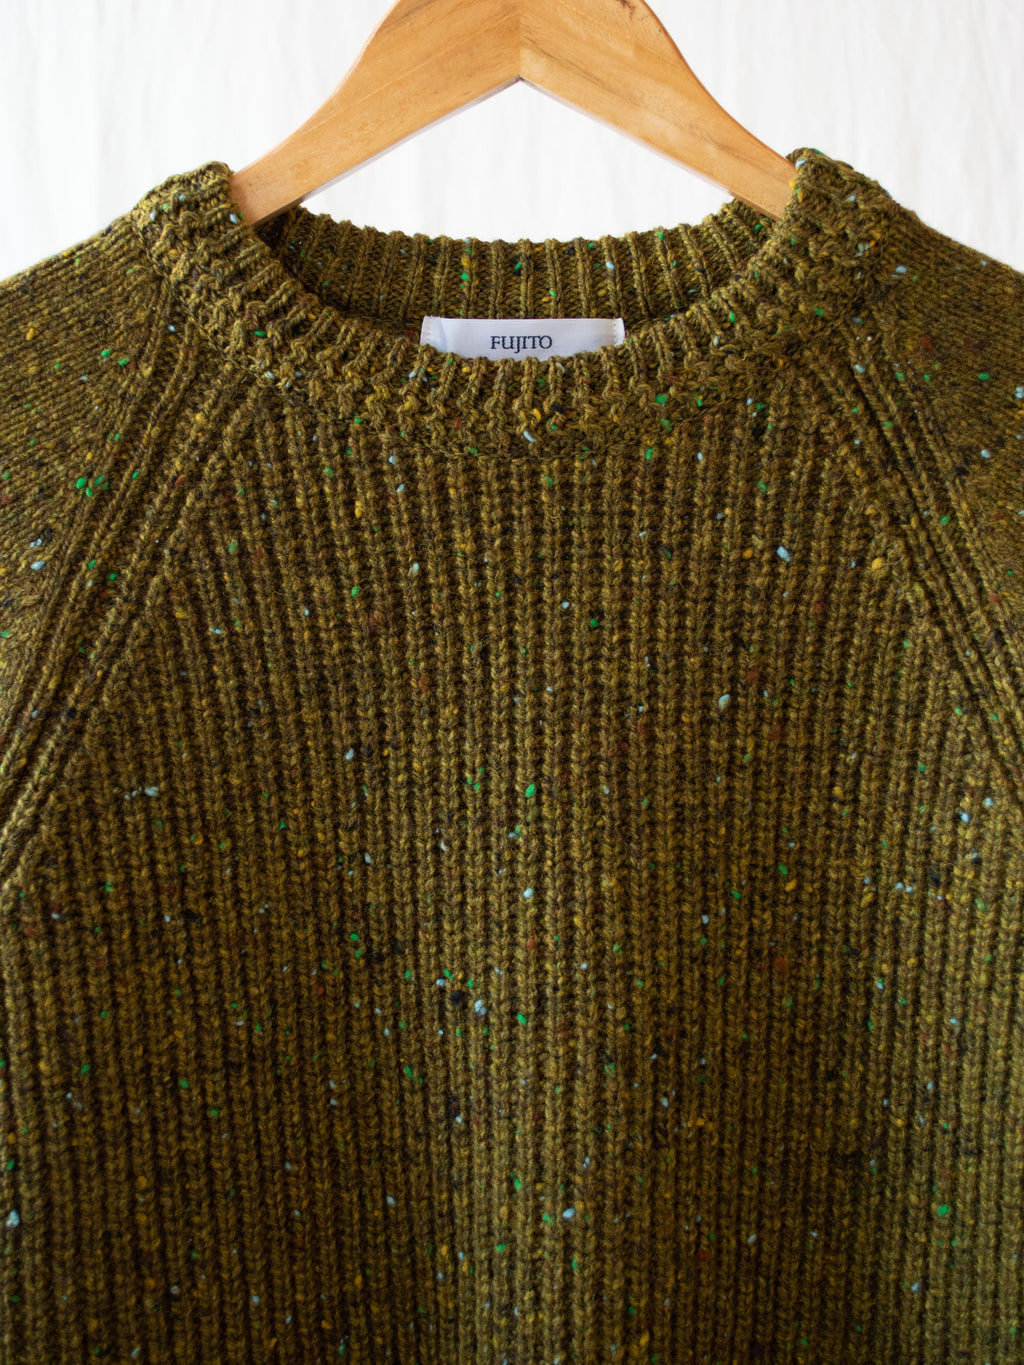 Namu Shop - Fujito Crewneck Rib Sweater - Moss Speckle (re-stocked)